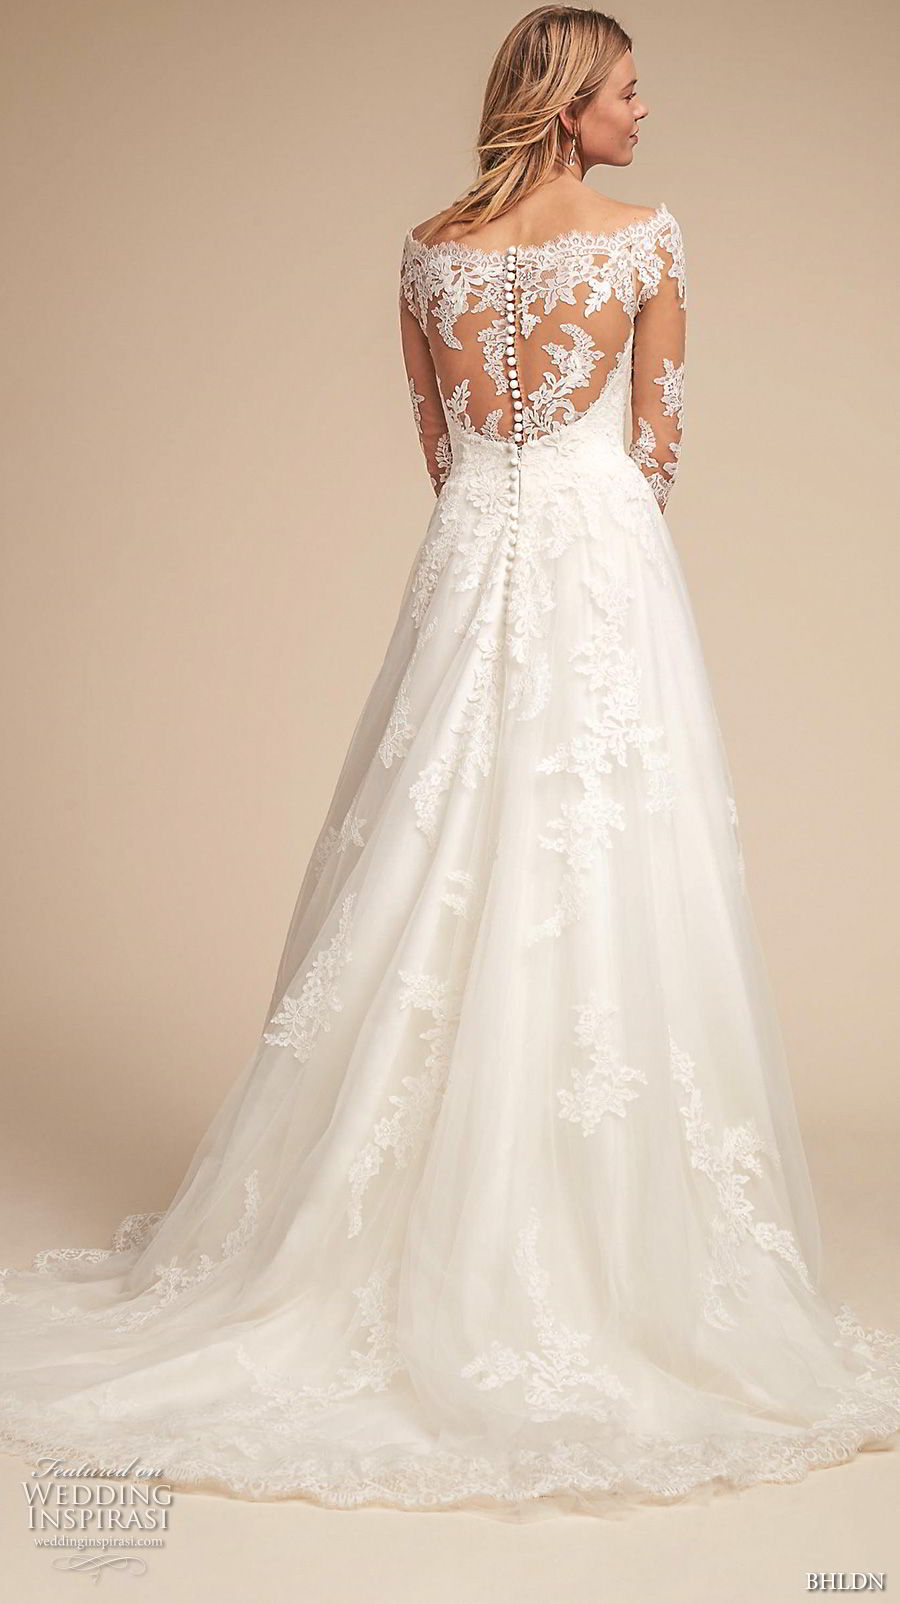 bhldn spring 2018 bridal half sleeves illusion bateau sweetheart neckline full embellishment romantic elegant a  line wedding dress lace back medium train (1) bv